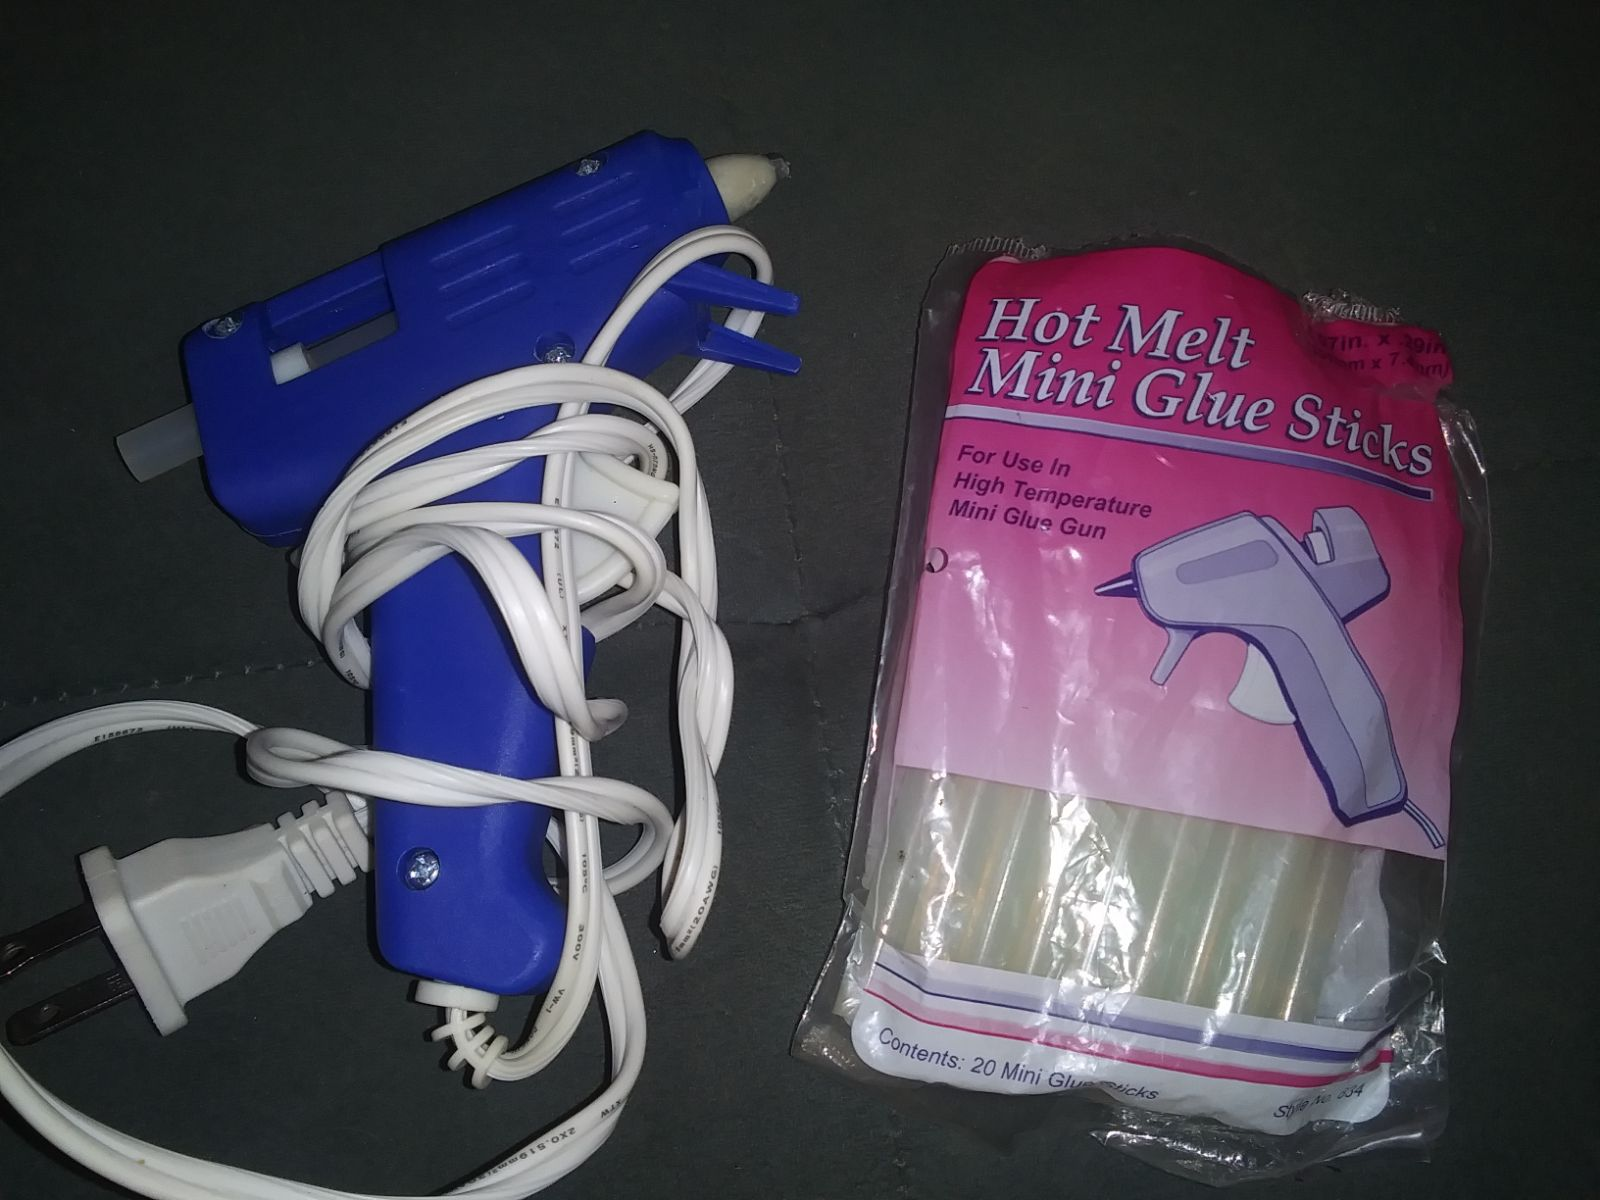 Hot glue gun and sticks